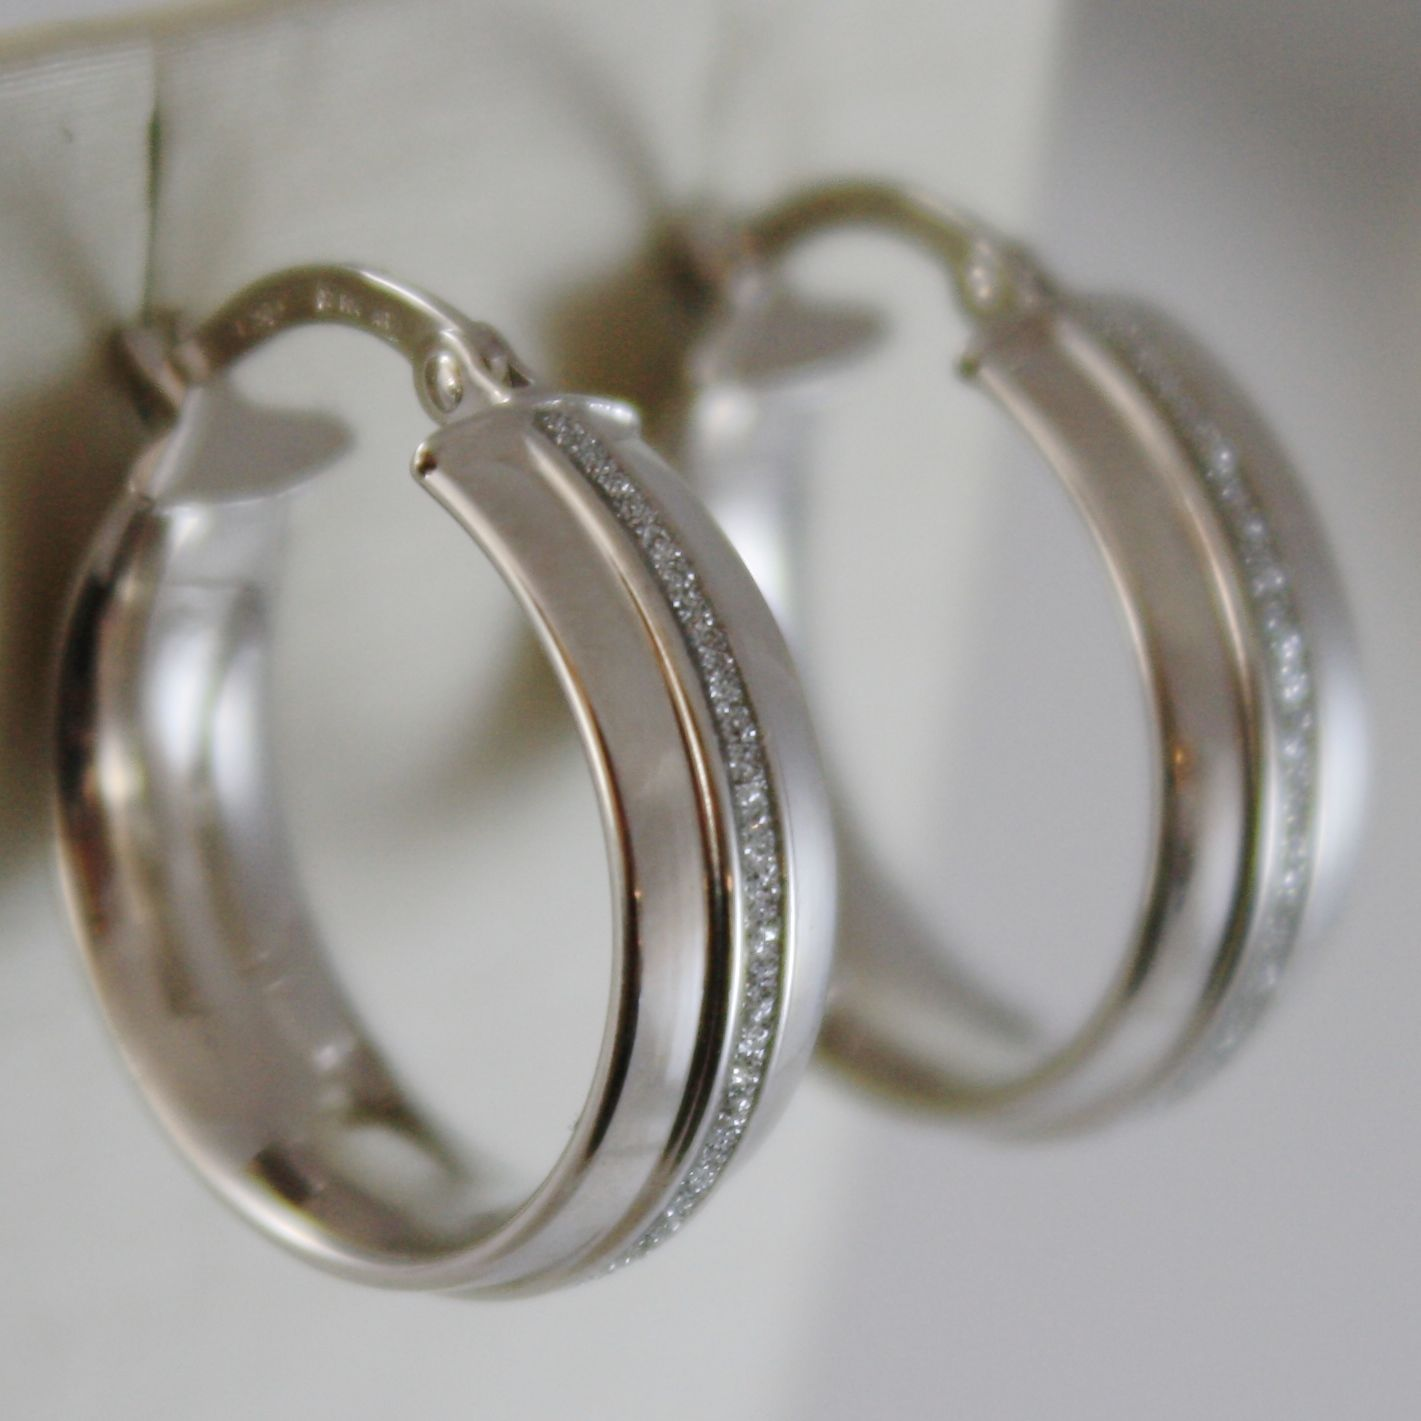 SOLID 18K WHITE GOLD CIRCLE HOOP EARRINGS GLAM LUMINOUS AND BRIGHT MADE IN ITALY